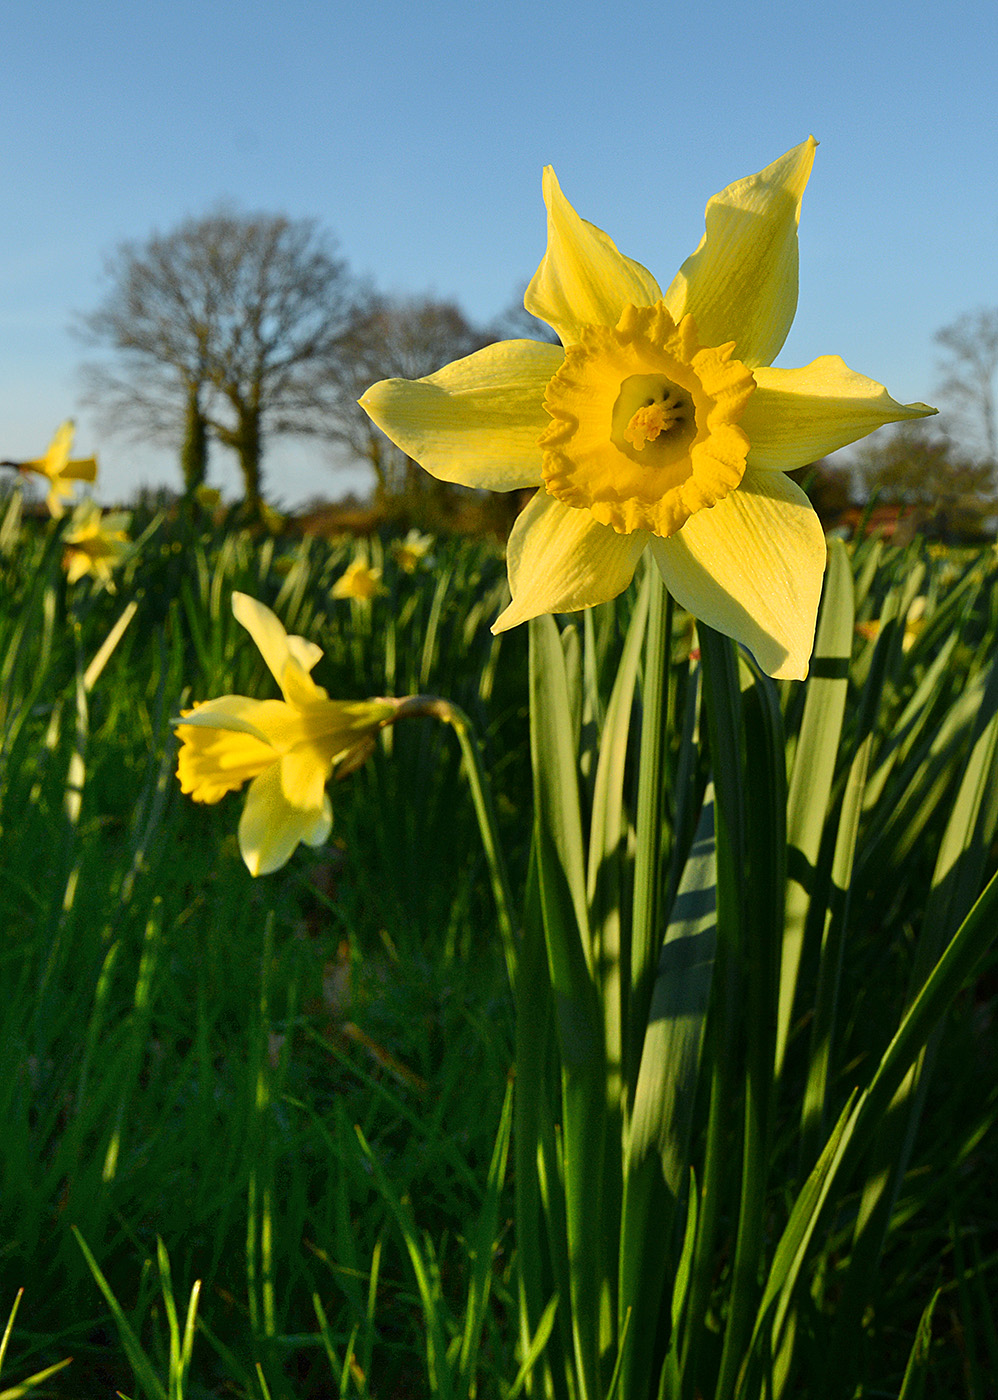 Daffodils Newent NCR